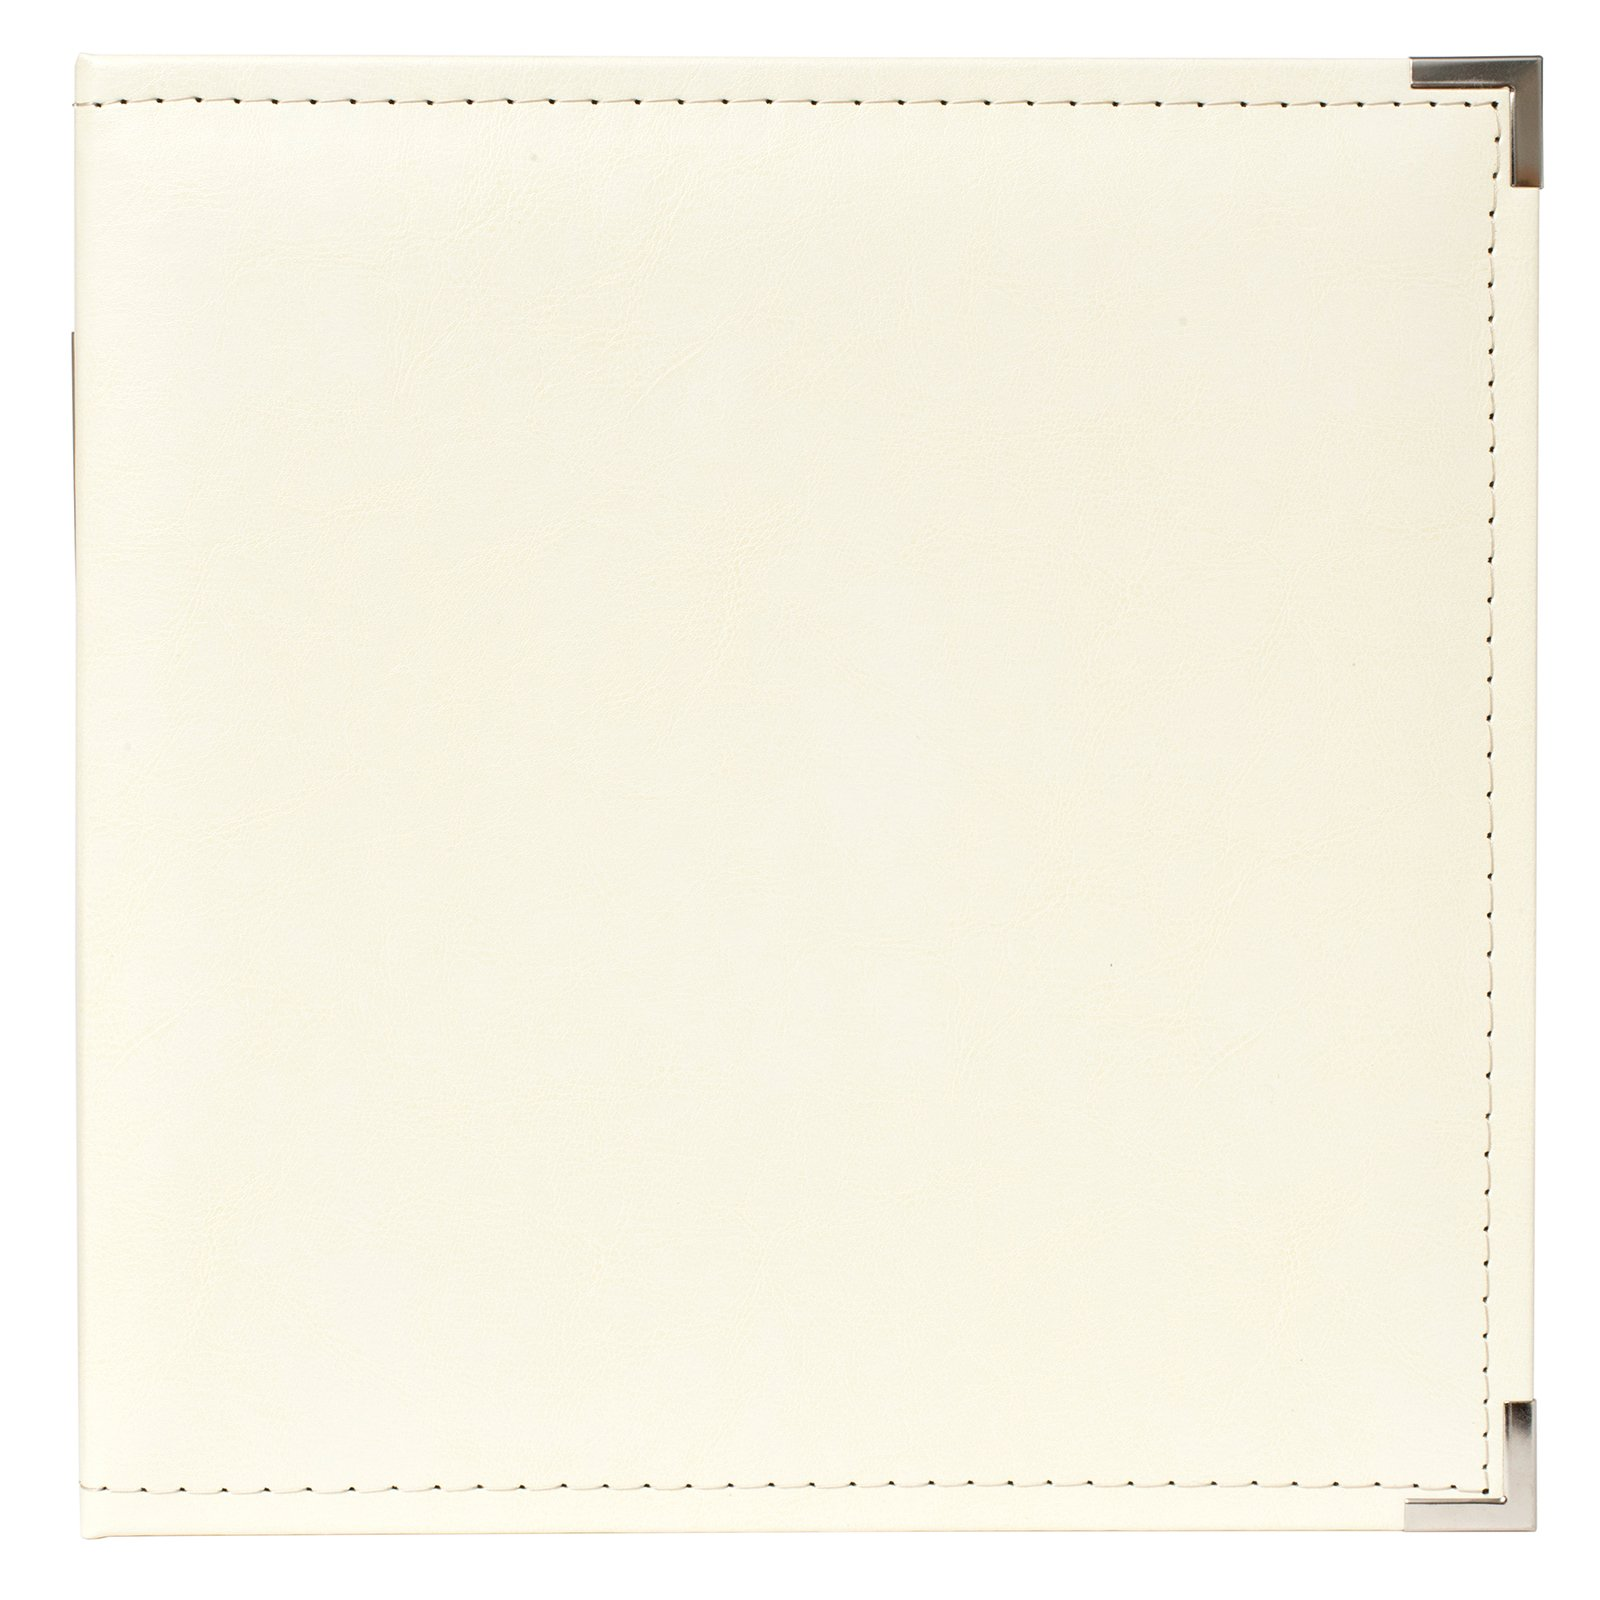 American Crafts We R Memory Keepers Classic Leather D-Ring Scrapbook Album - Acid Free, Archival Quality - Vanilla by We R Memory Keepers